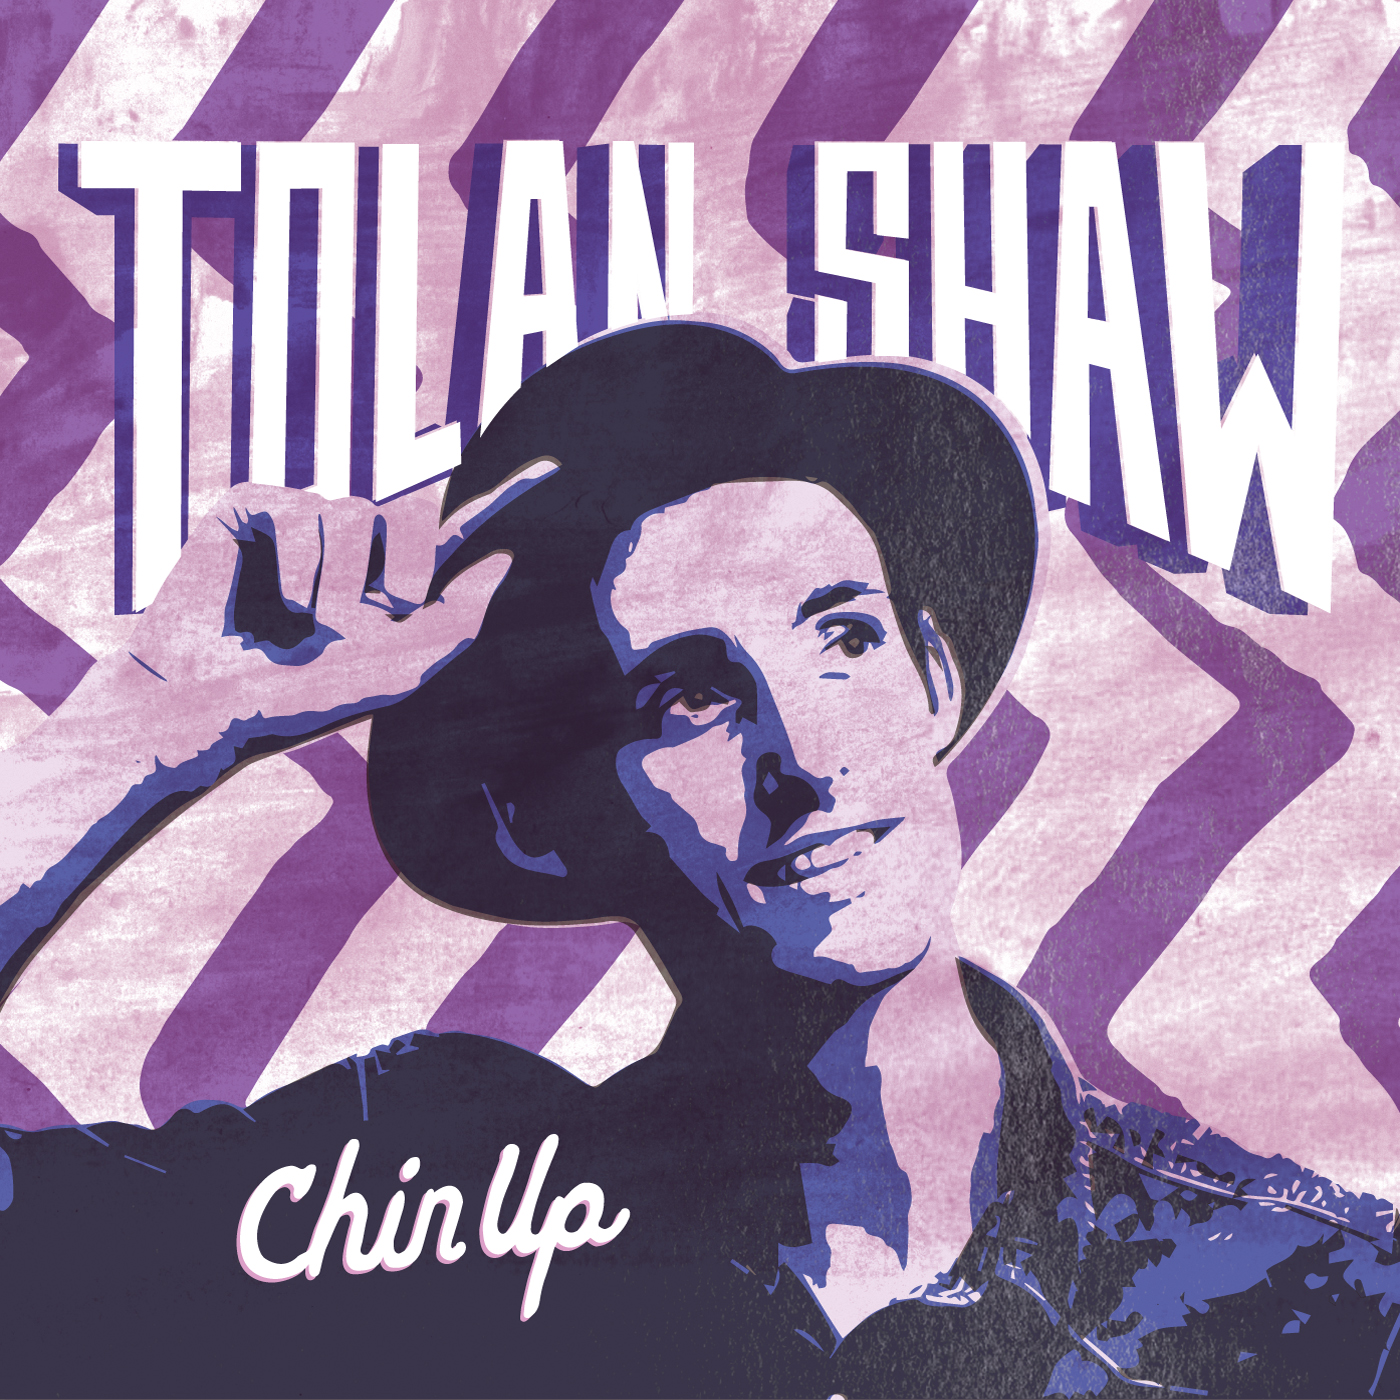 Chin Up by Tolan Shaw